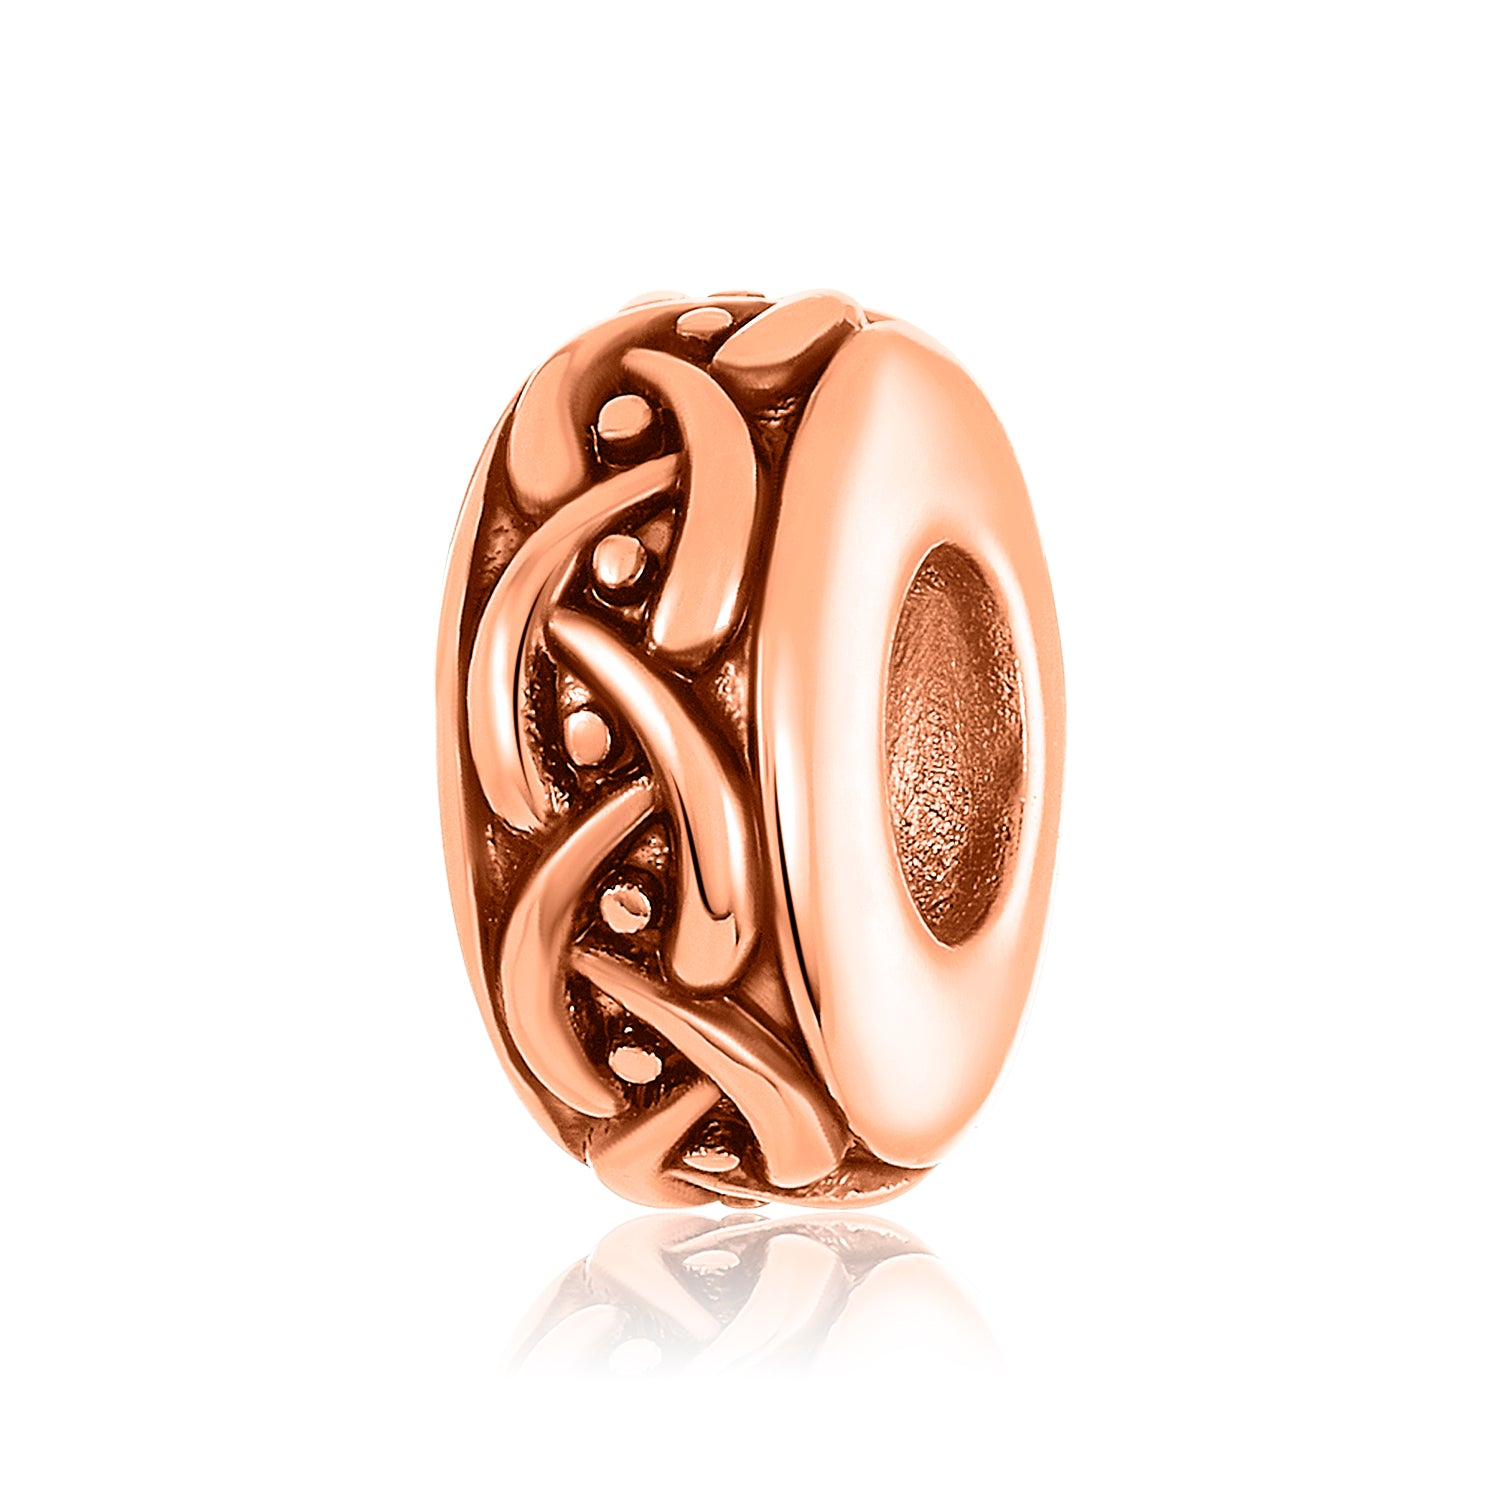 Rose gold charm/bead spacer with a weaved pattern design for use on DBW interchangeable bangle bracelets.  Rose gold charm/ bead spacers sold as pair.